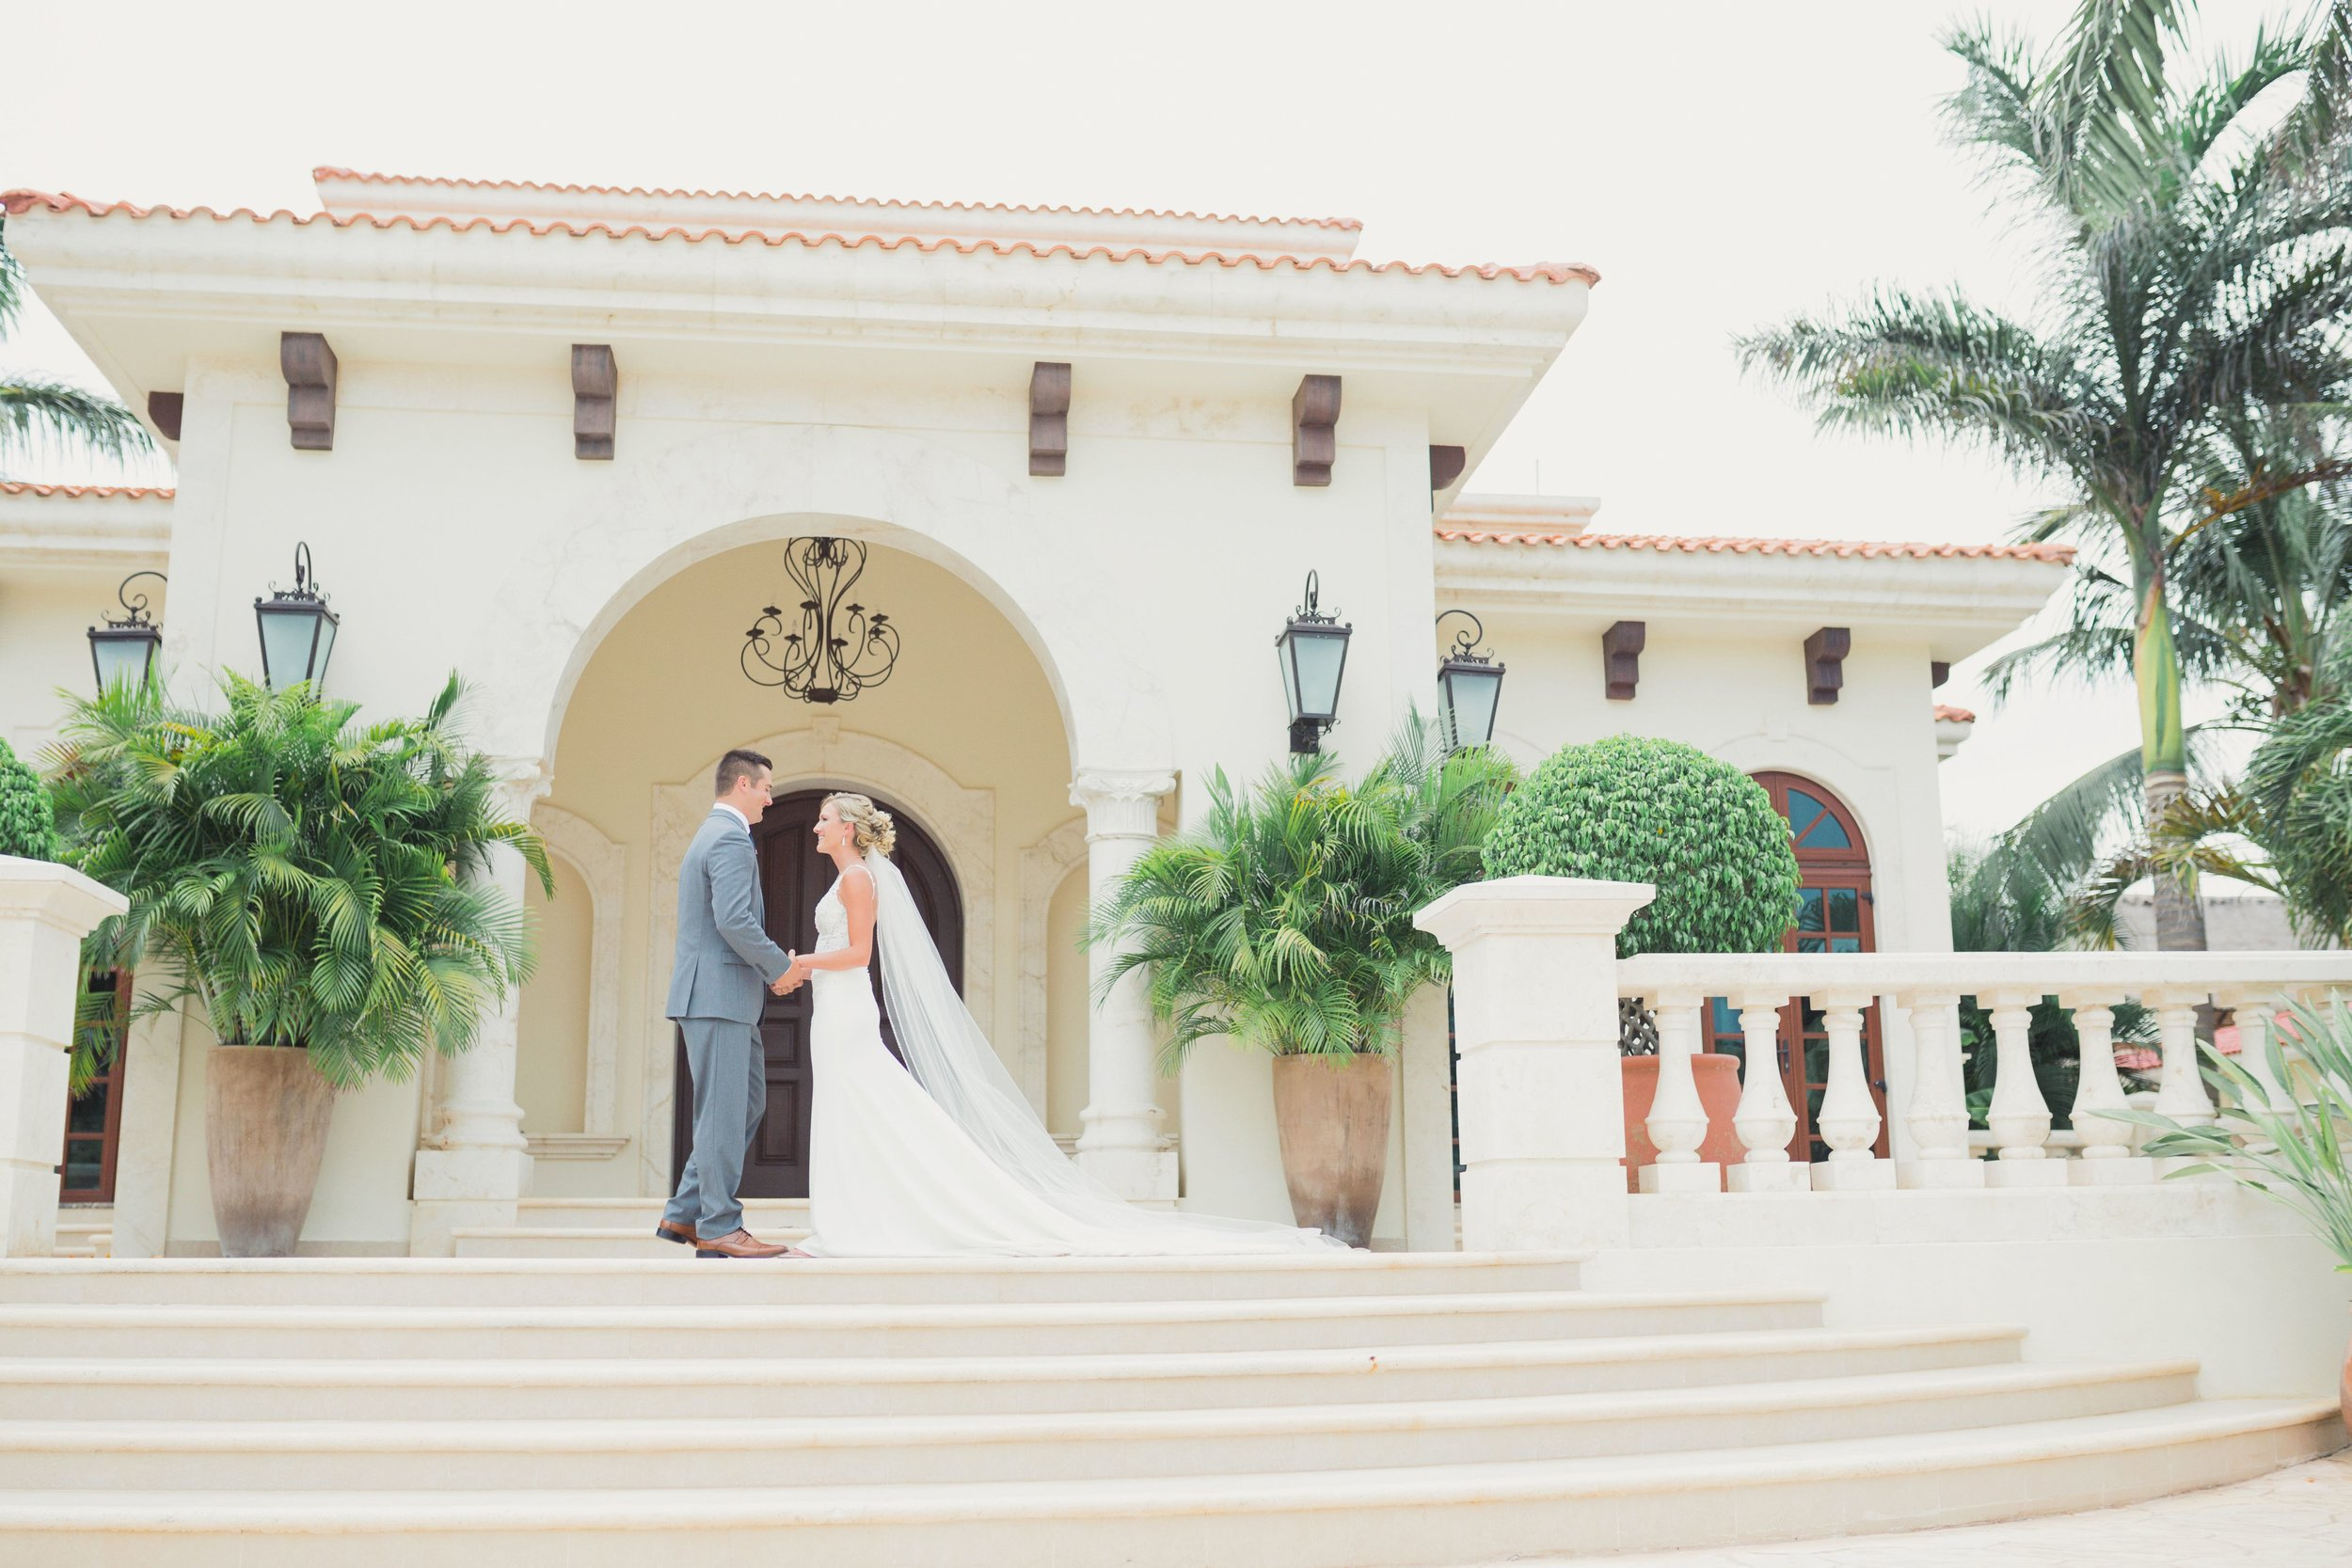 cancun-wedding-venue-villa-la-joya-70 copy-websize.jpg